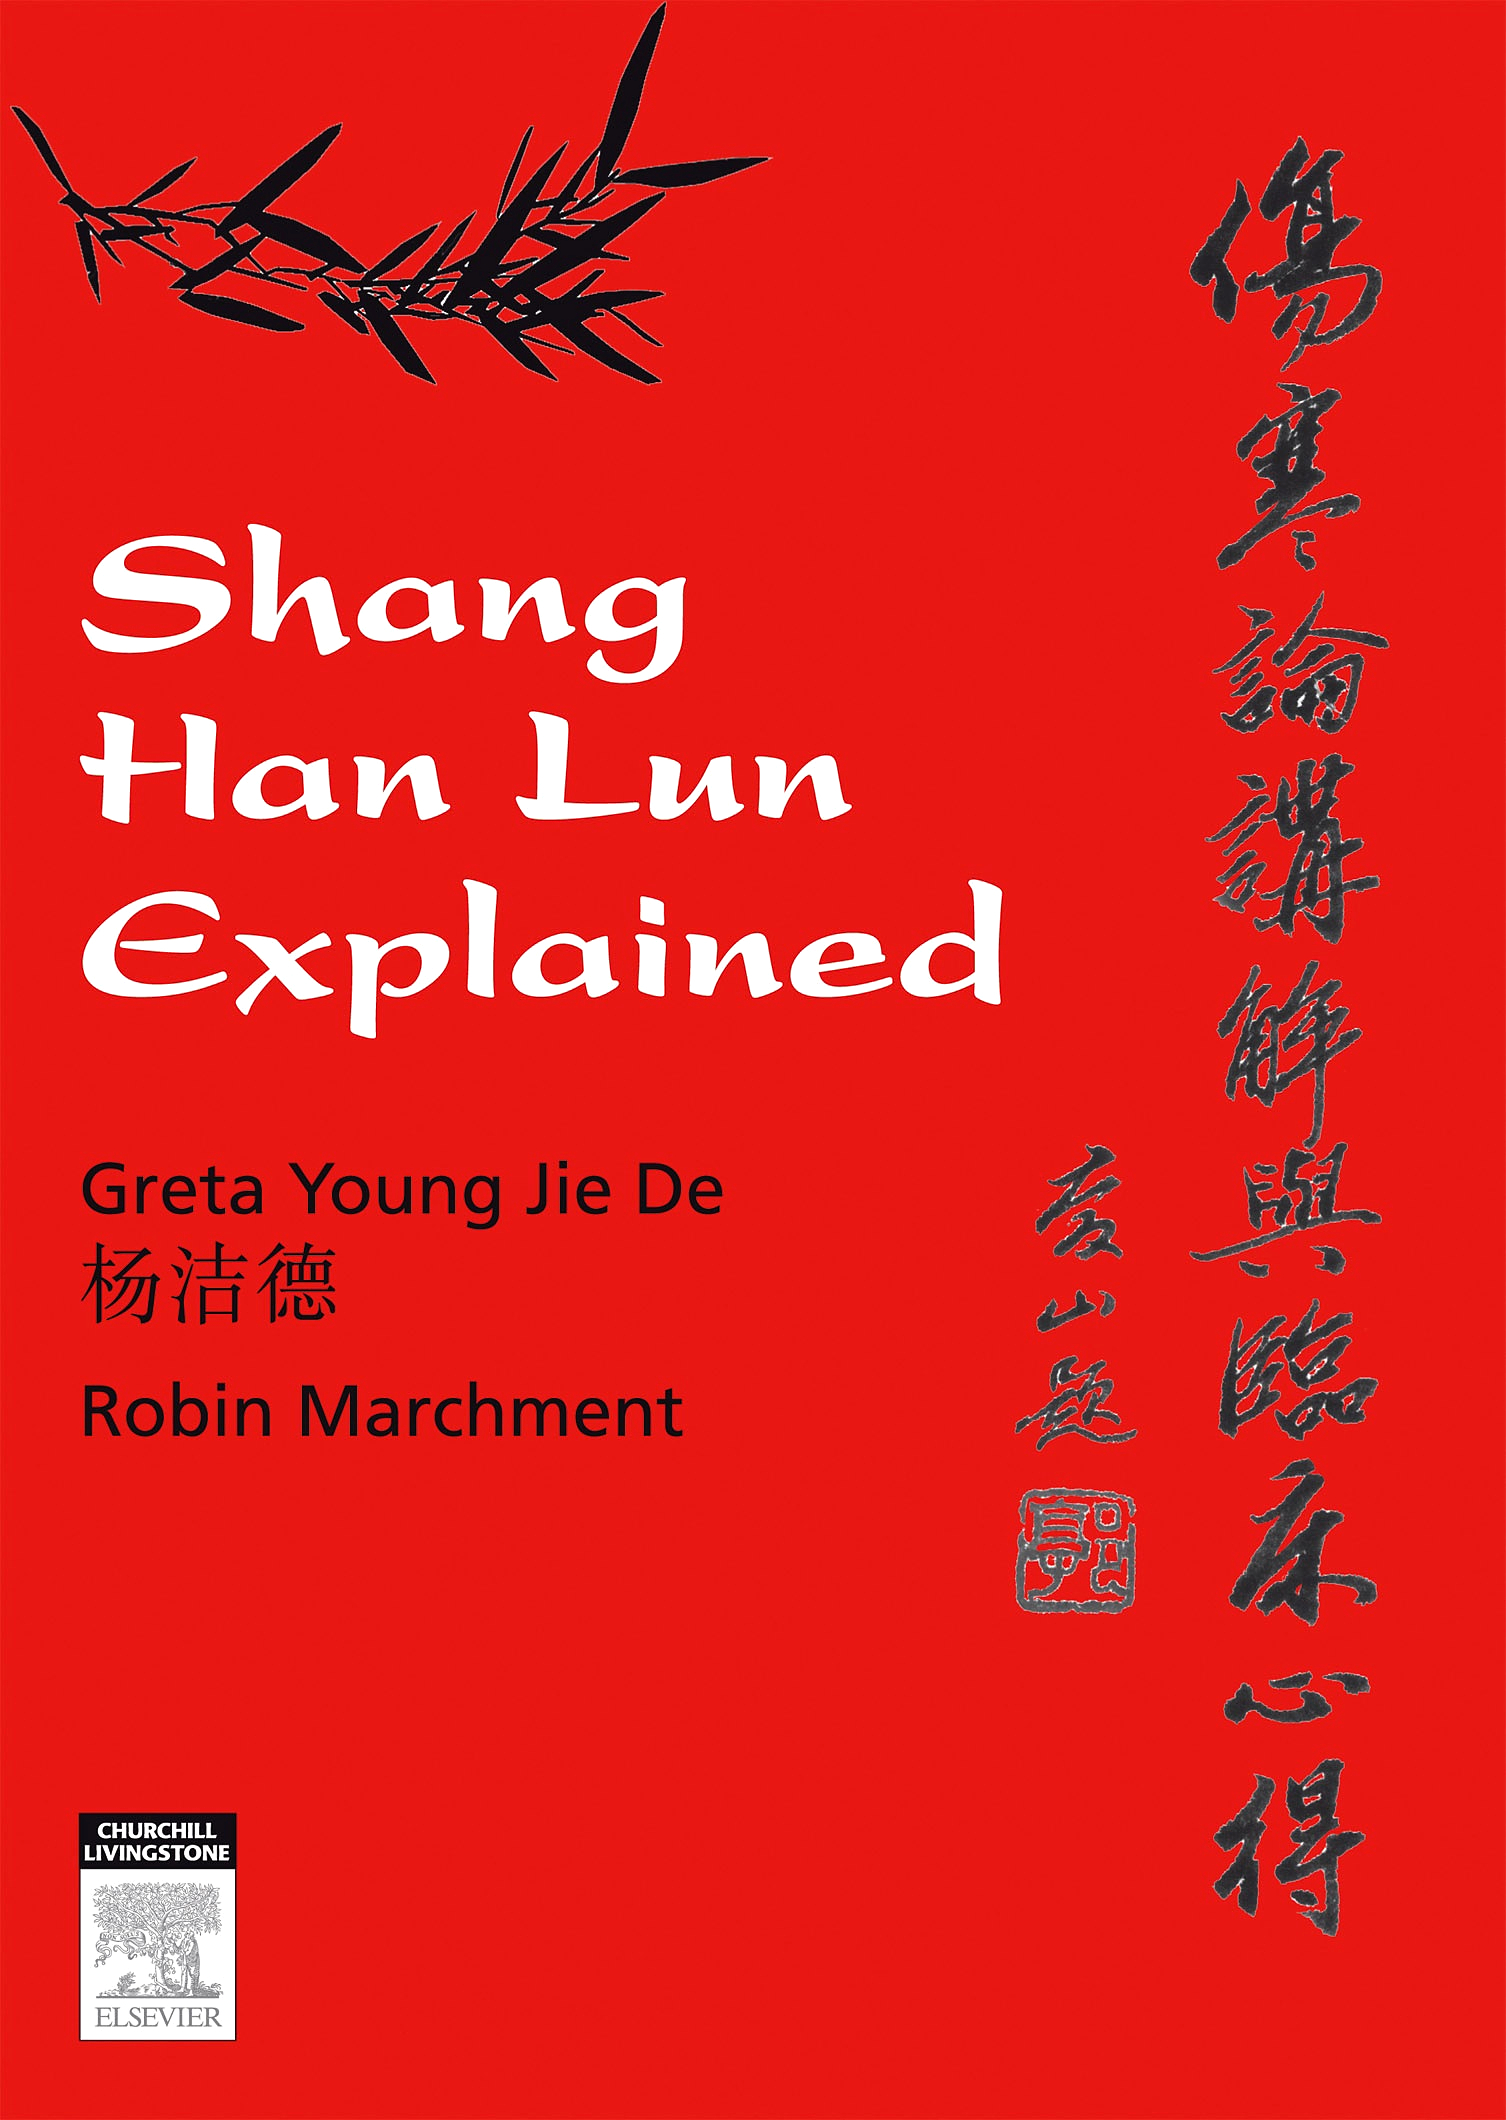 Shang Han Lun Explained: A Guided Tour of Ancient Classic Text